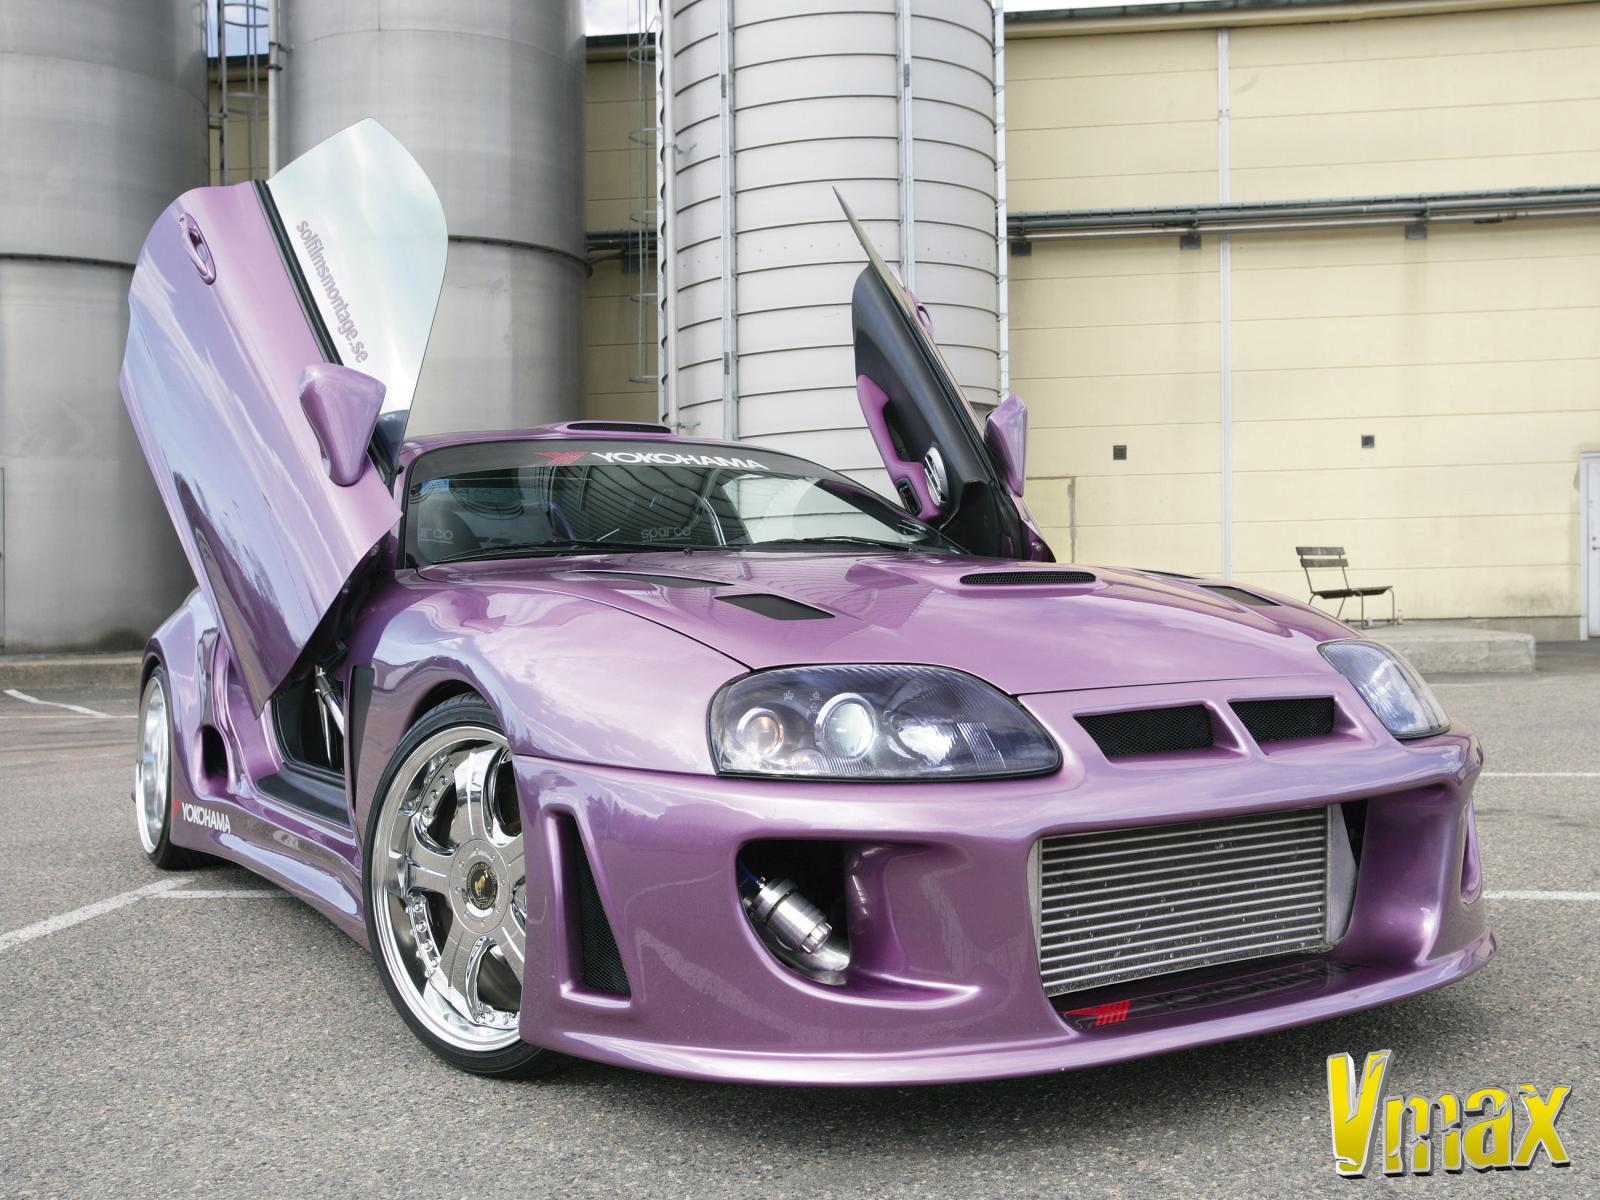 Voitures tuning page 2 - Voiture tuning images ...